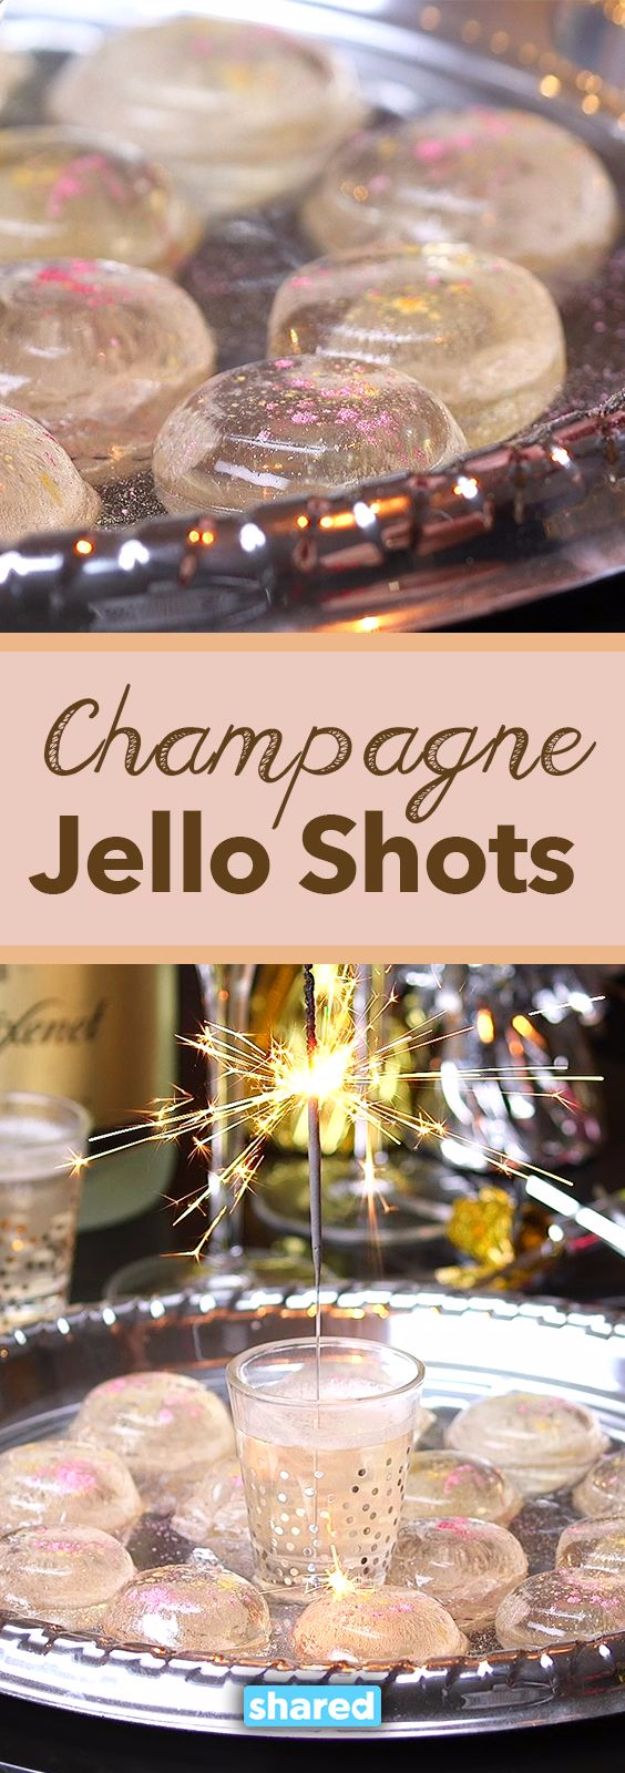 Best Jello Shot Recipes - Super Easy Champagne Jello Shots - Easy Jello Shots Recipe Ideas with Vodka, Strawberry, Tequila, Rum, Jolly Rancher and Creative Alcohol - Unique and Fun Drinks for Parties like Whiskey Fireball, Fall Halloween Versions, Malibu, 4th of July, Birthday, Summer, Christmas and Birthdays #jelloshots #partydrinks #drinkrecipes